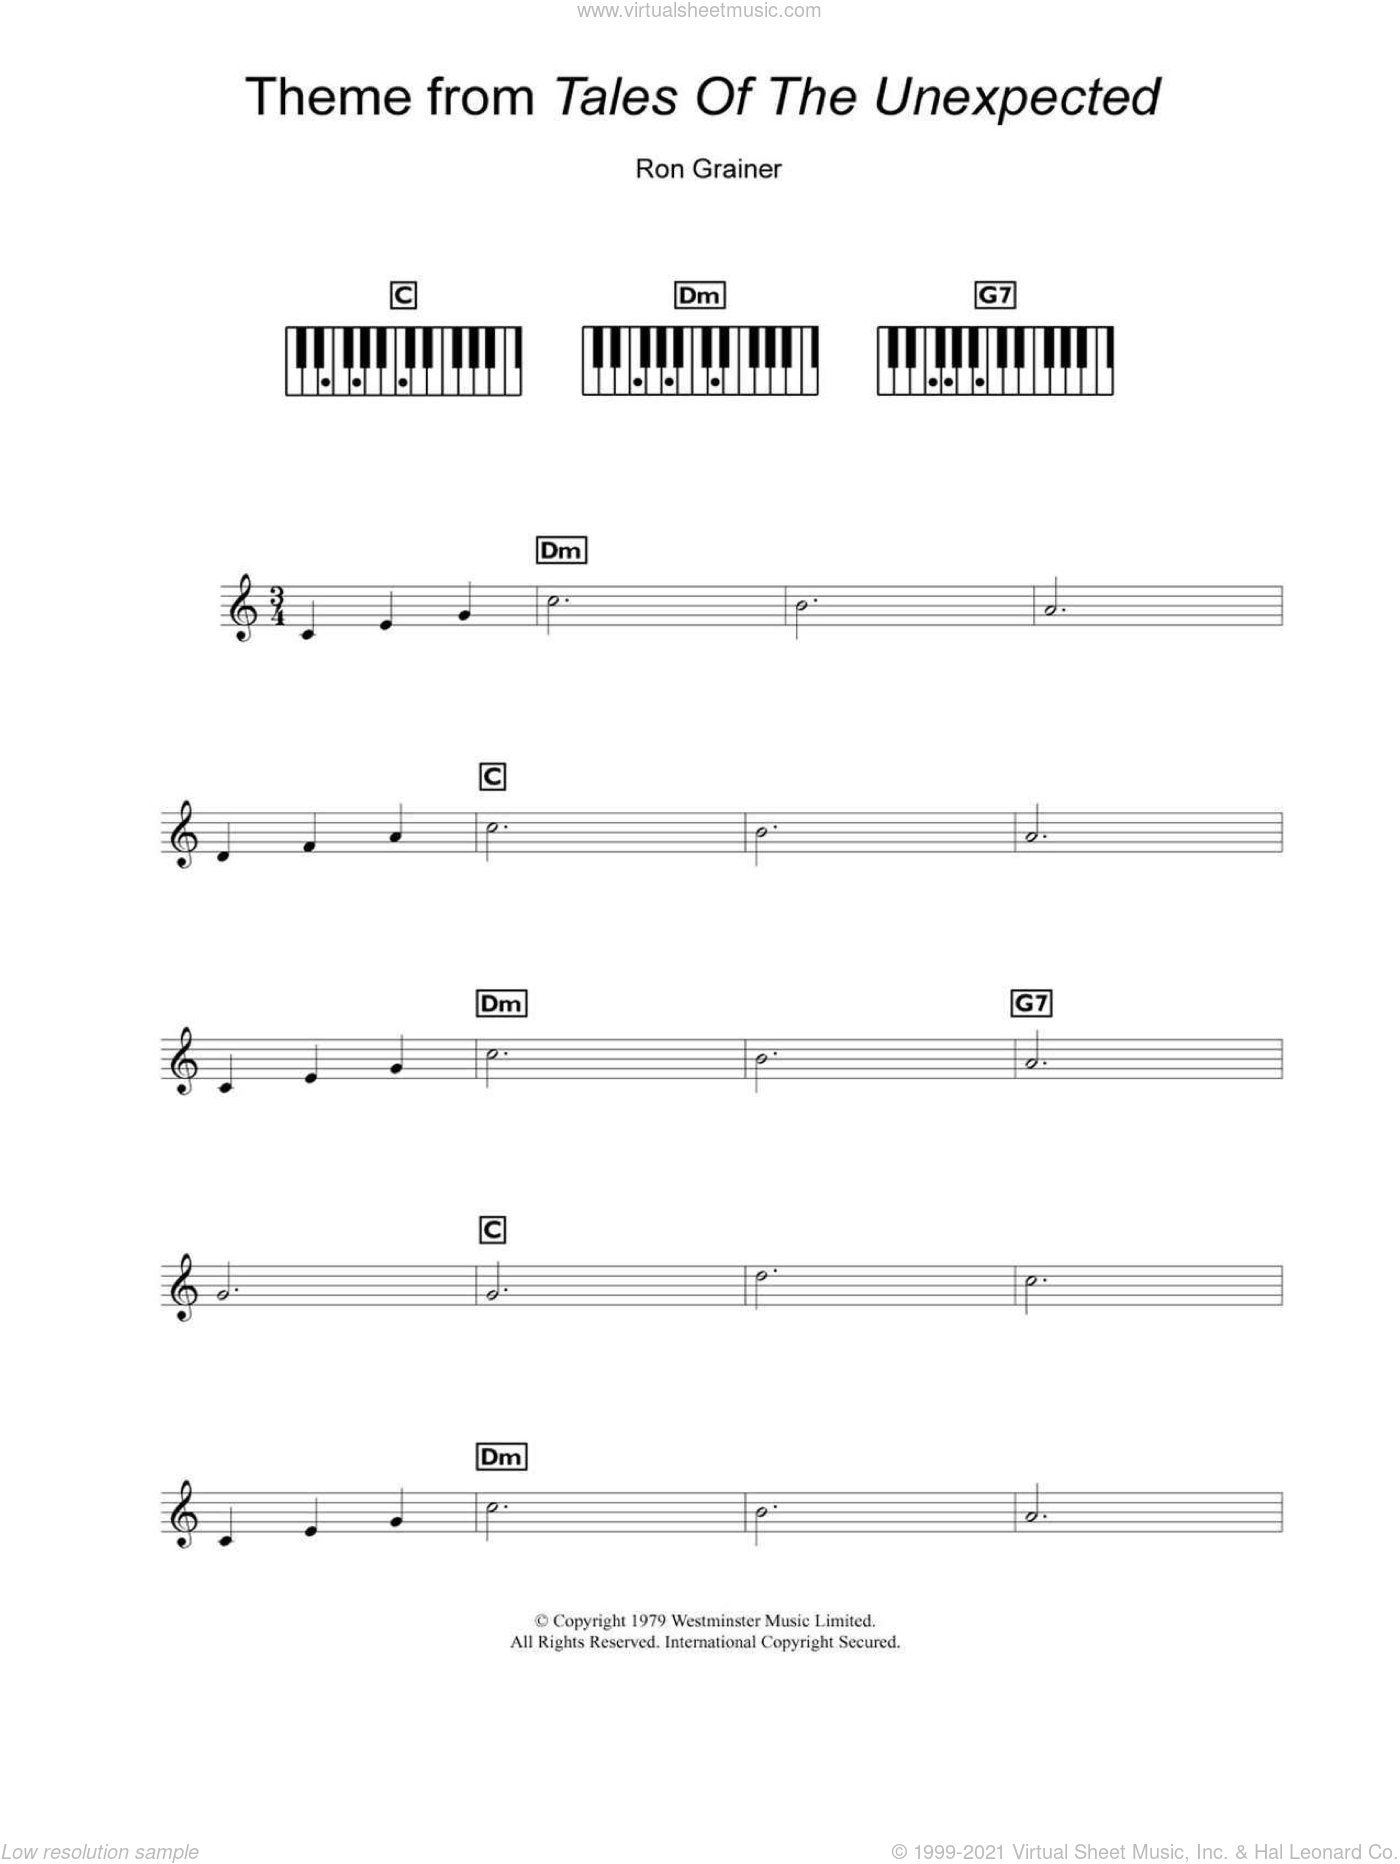 Theme from Tales Of The Unexpected sheet music for piano solo (chords, lyrics, melody) by Ron Grainer. Score Image Preview.